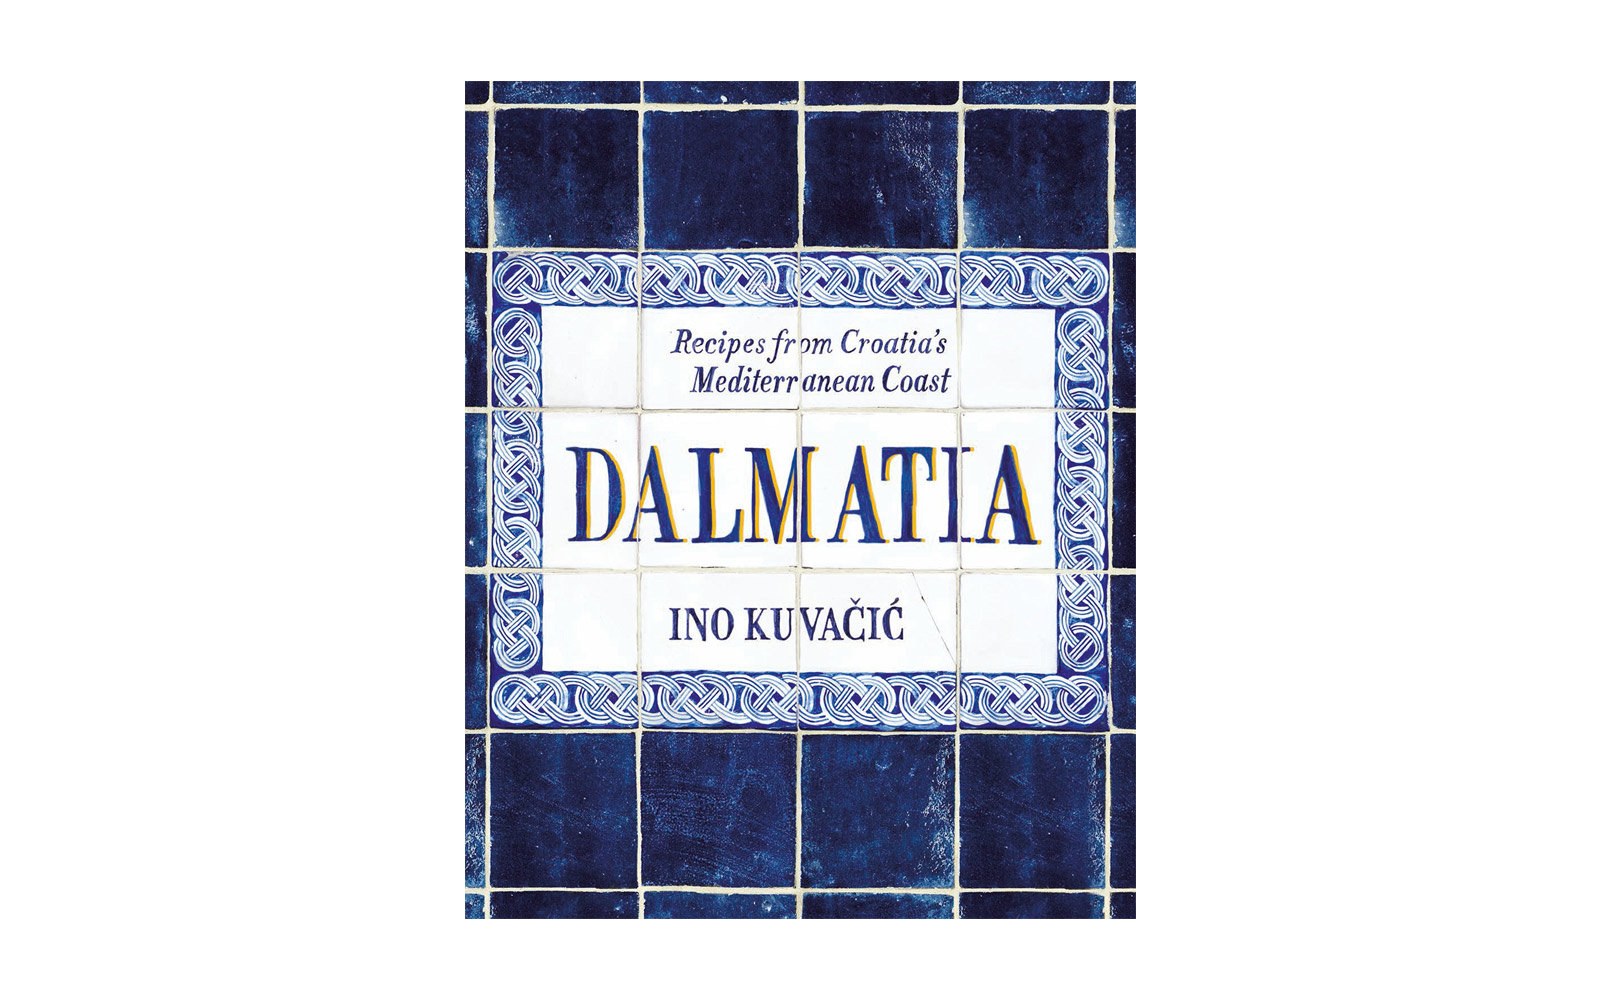 Recipes from Croatia's Mediterranean Coast, Dalmatia, by Ino Kuvacic